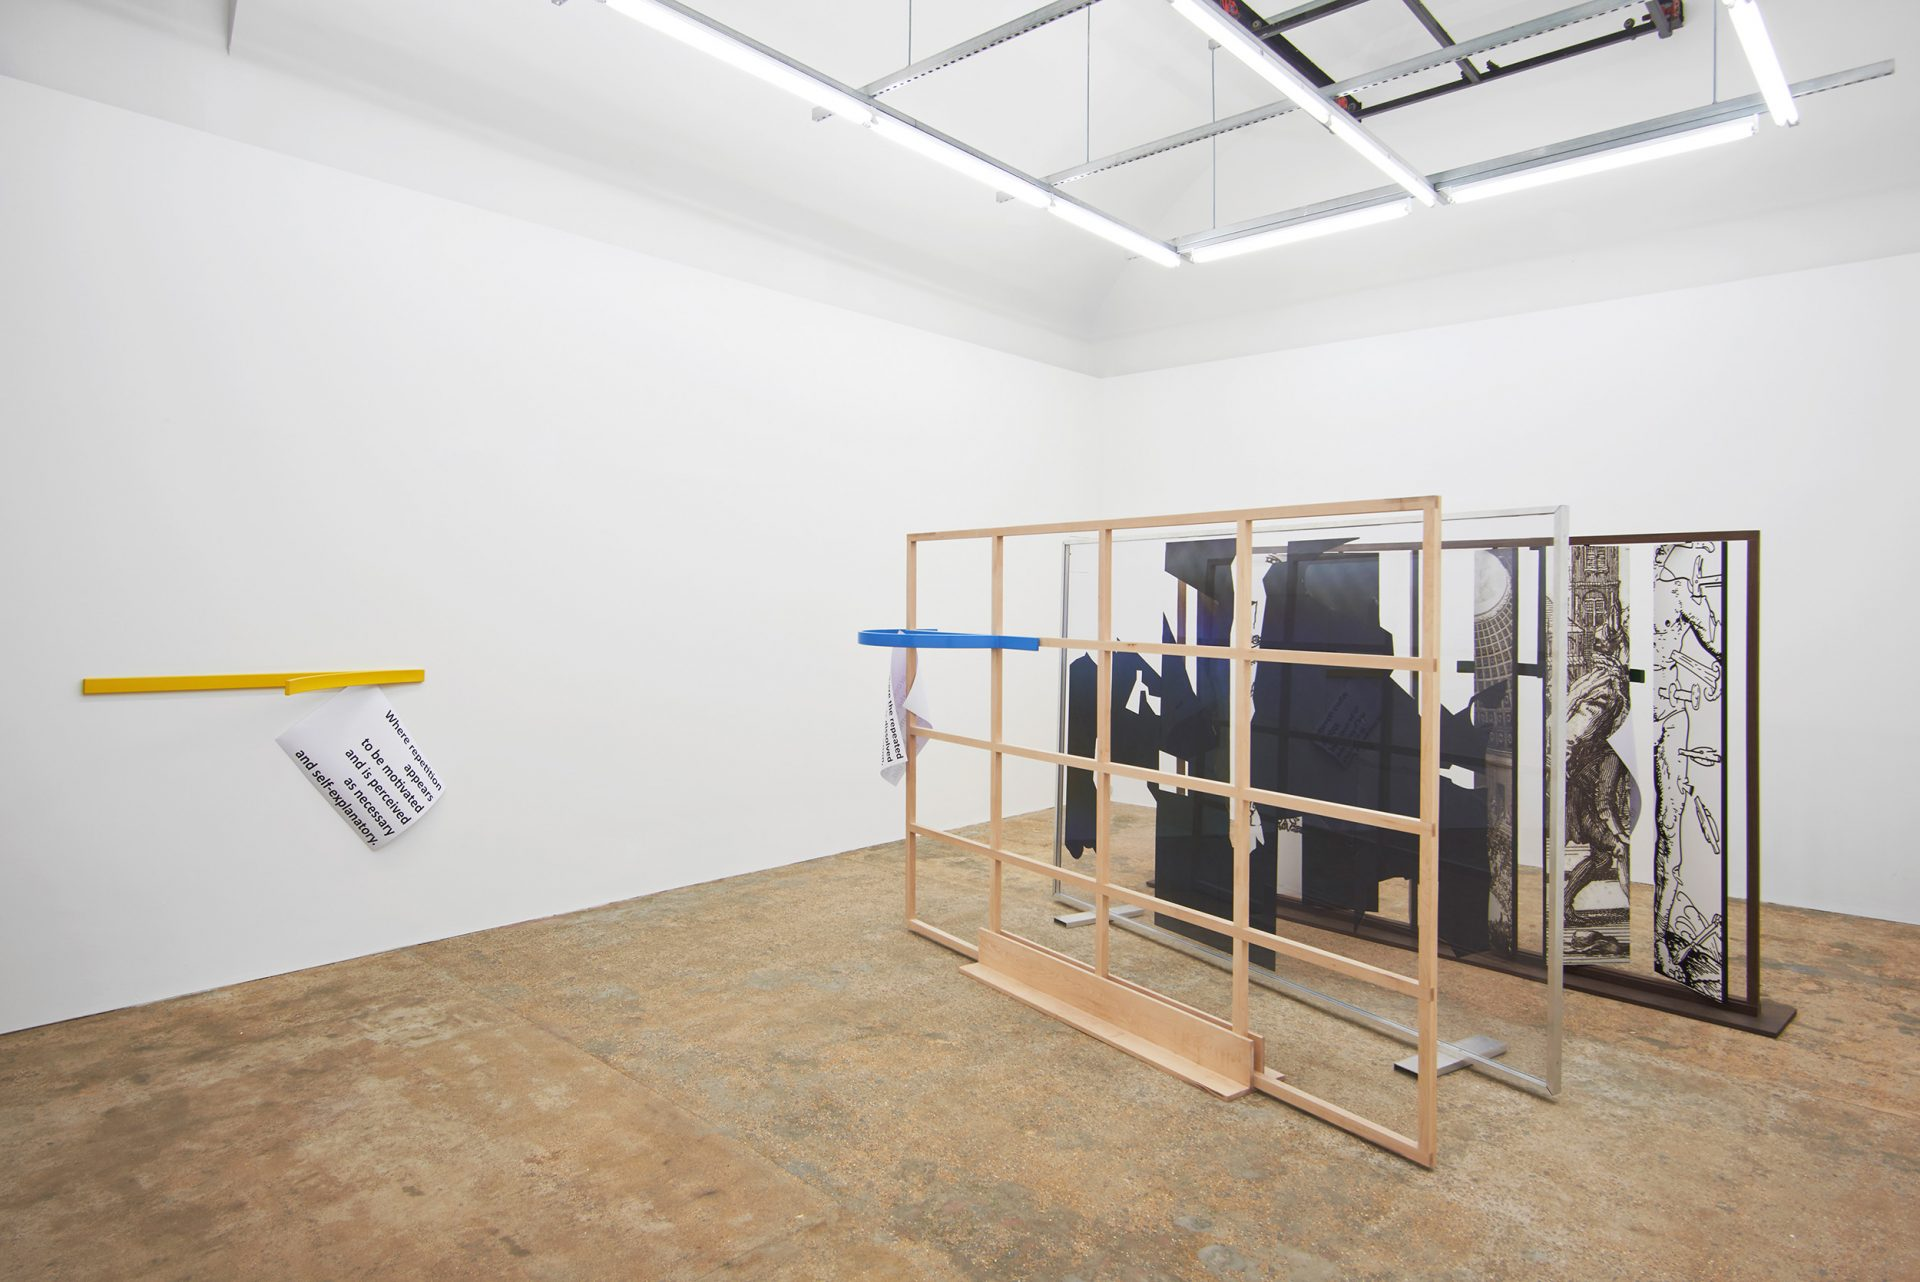 Present: Falke Pisano, Instrument for a Spatial Conception of Repetition, 2019